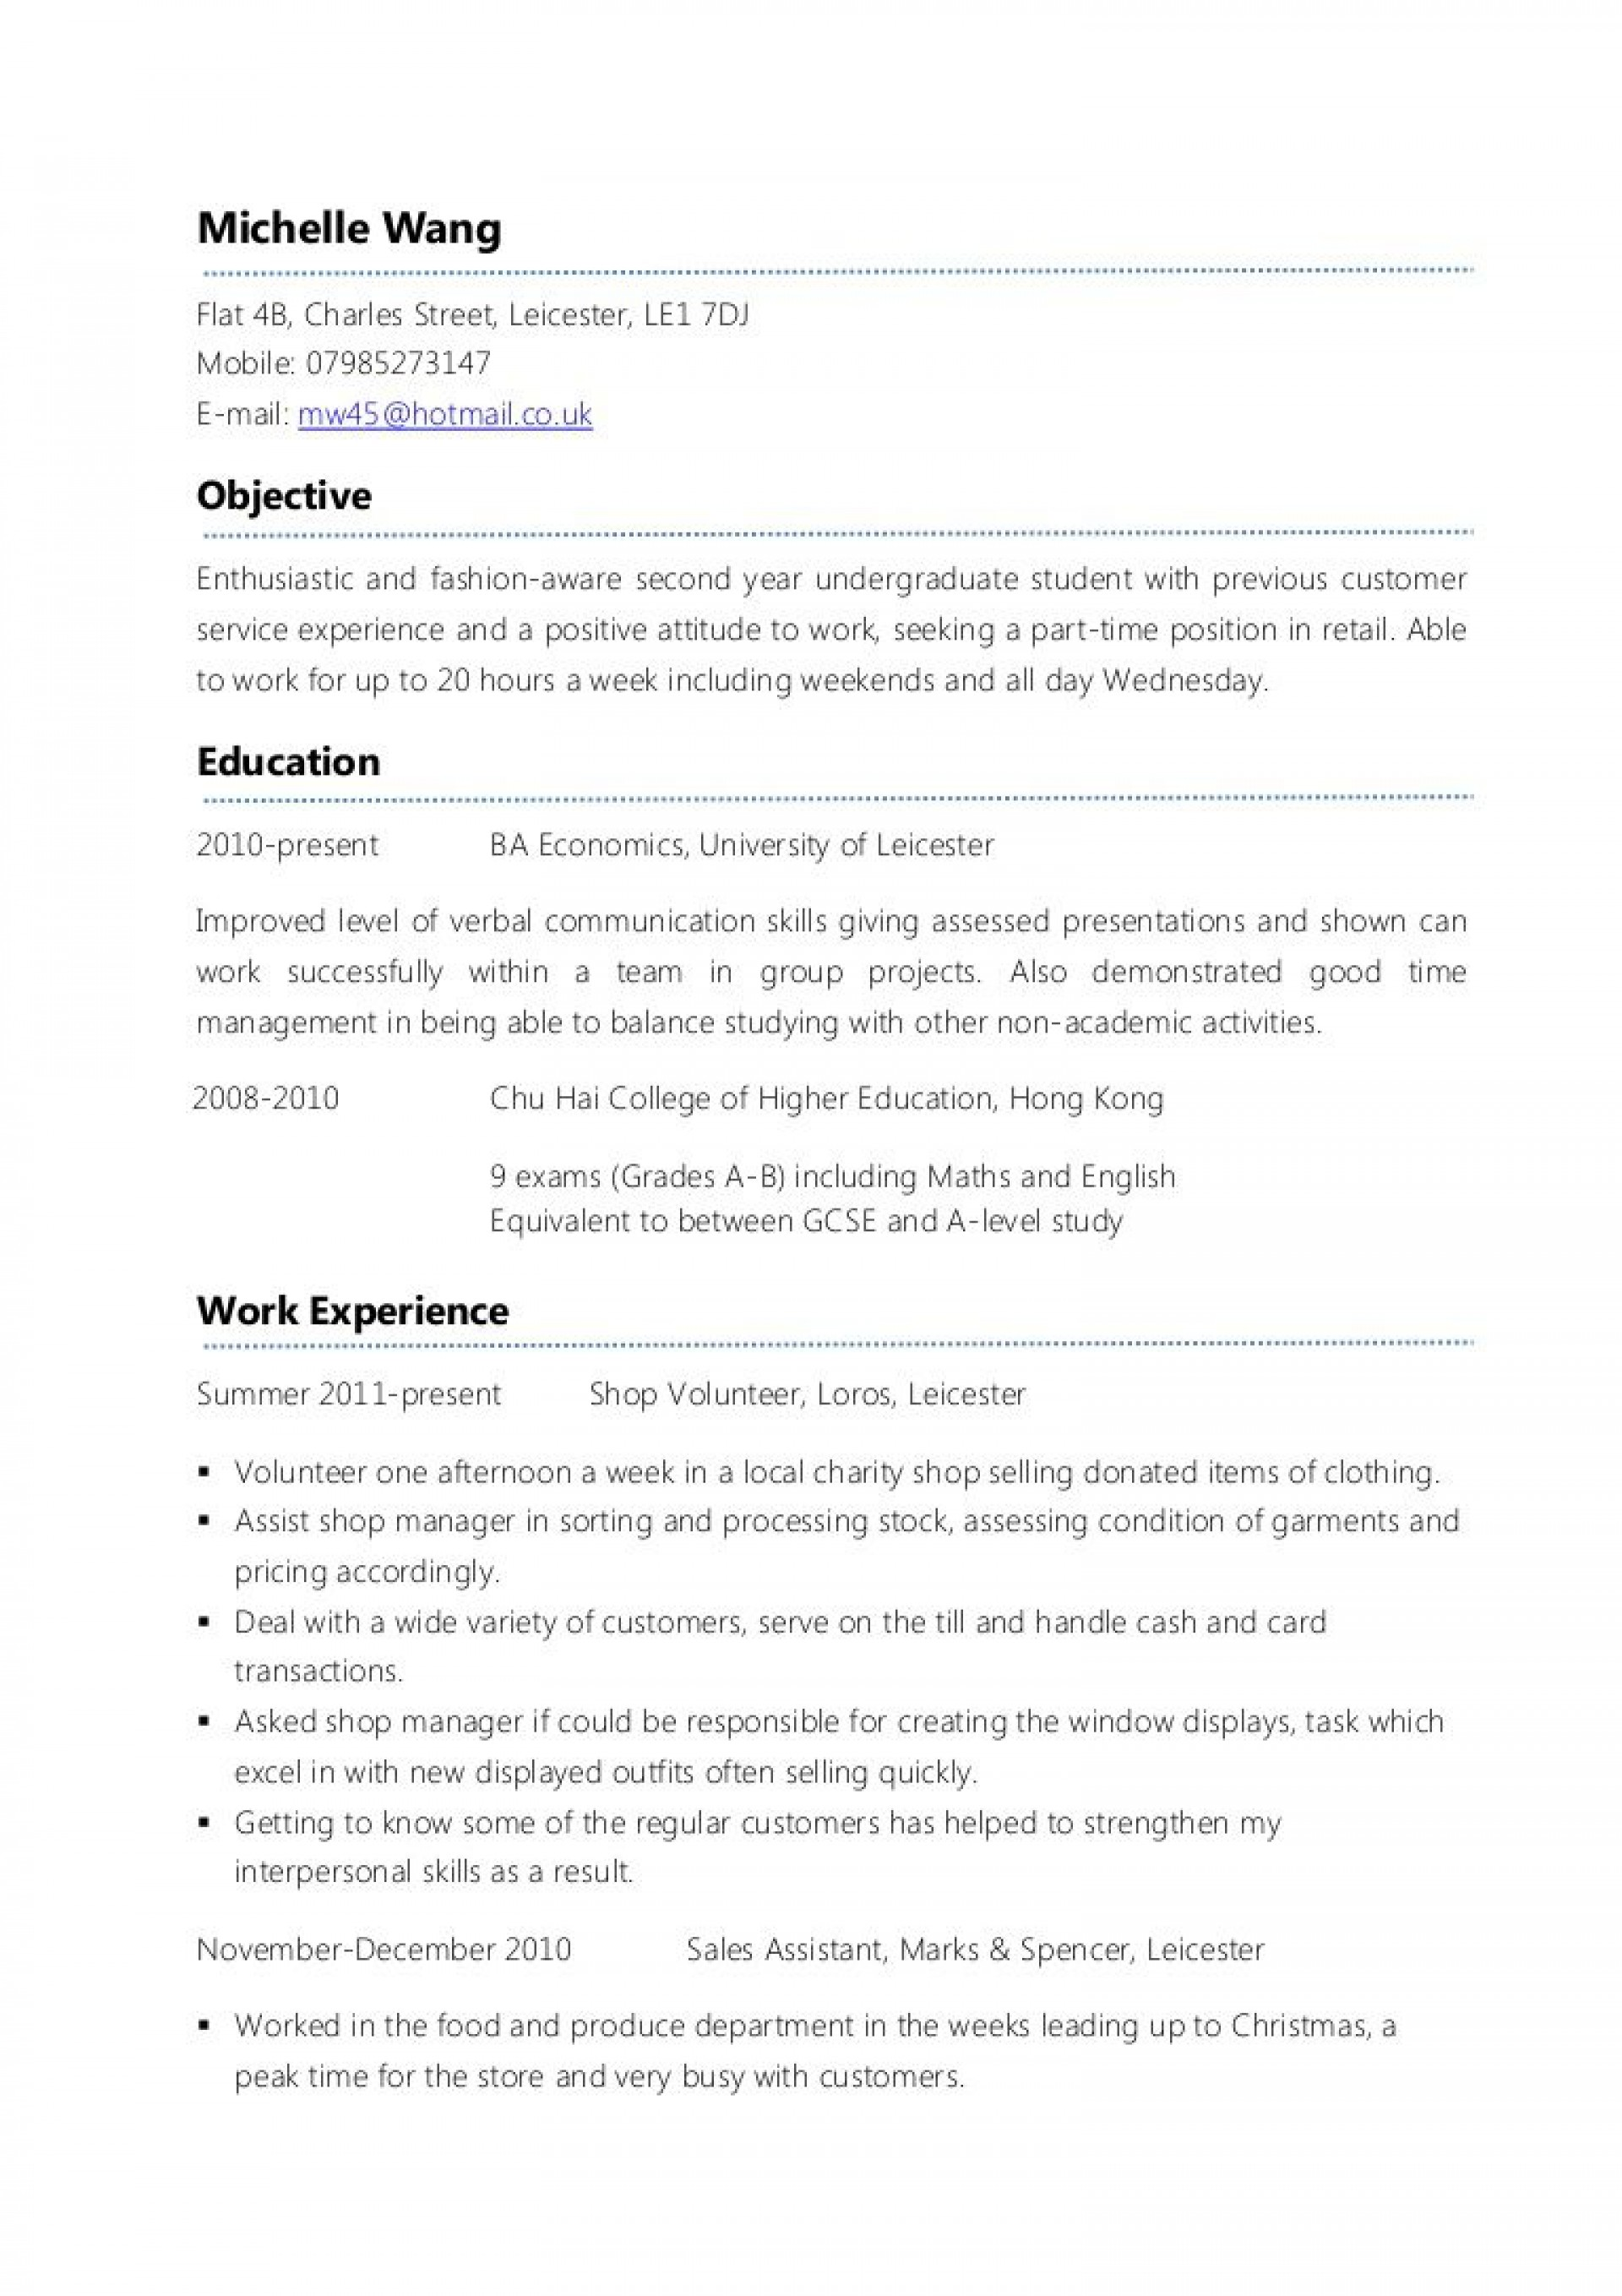 007 Frightening Part Time Job Resume Template Sample  Student Summary Example1920